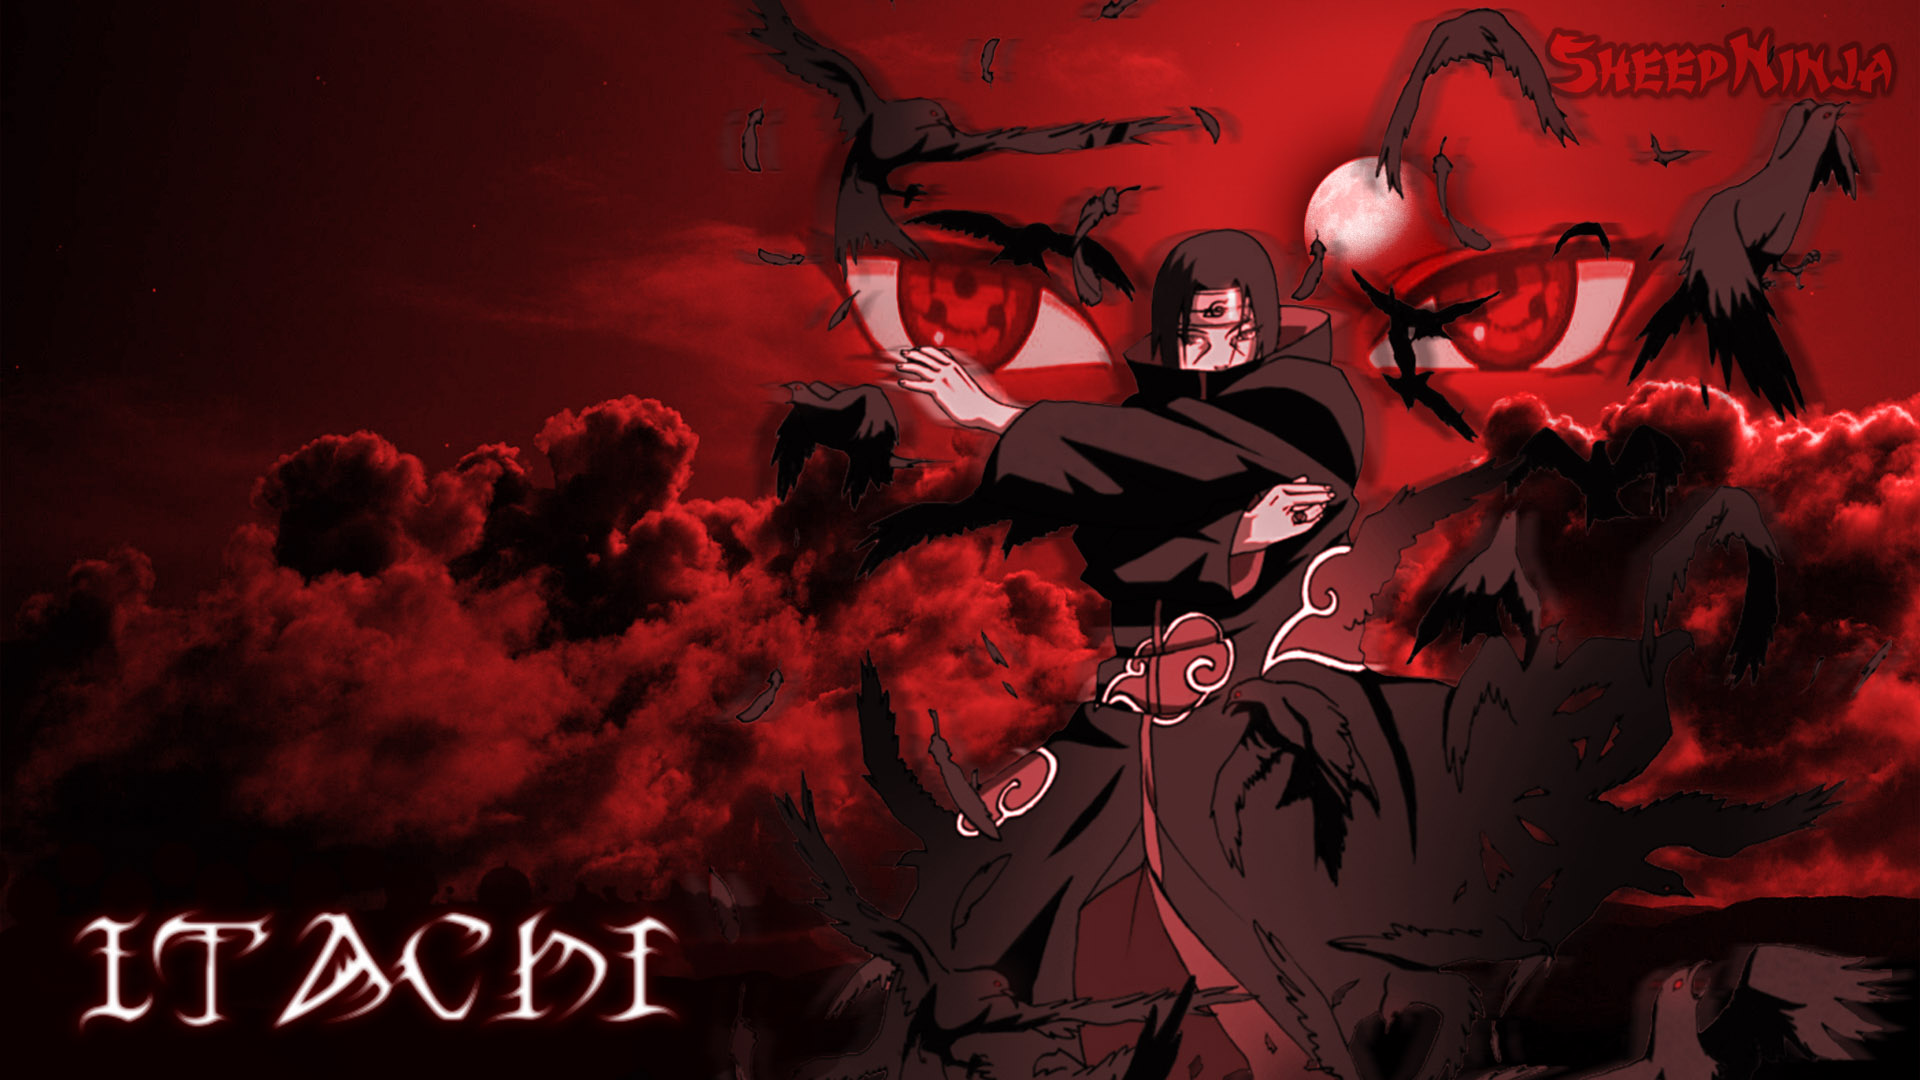 Free Download Itachi Wallpaper 29233 Hd Wallpapers Background 1920x1080 For Your Desktop Mobile Tablet Explore 77 Itachi Background Uchiha Wallpaper Itachi Uchiha Wallpaper Itachi Wallpapers Hd